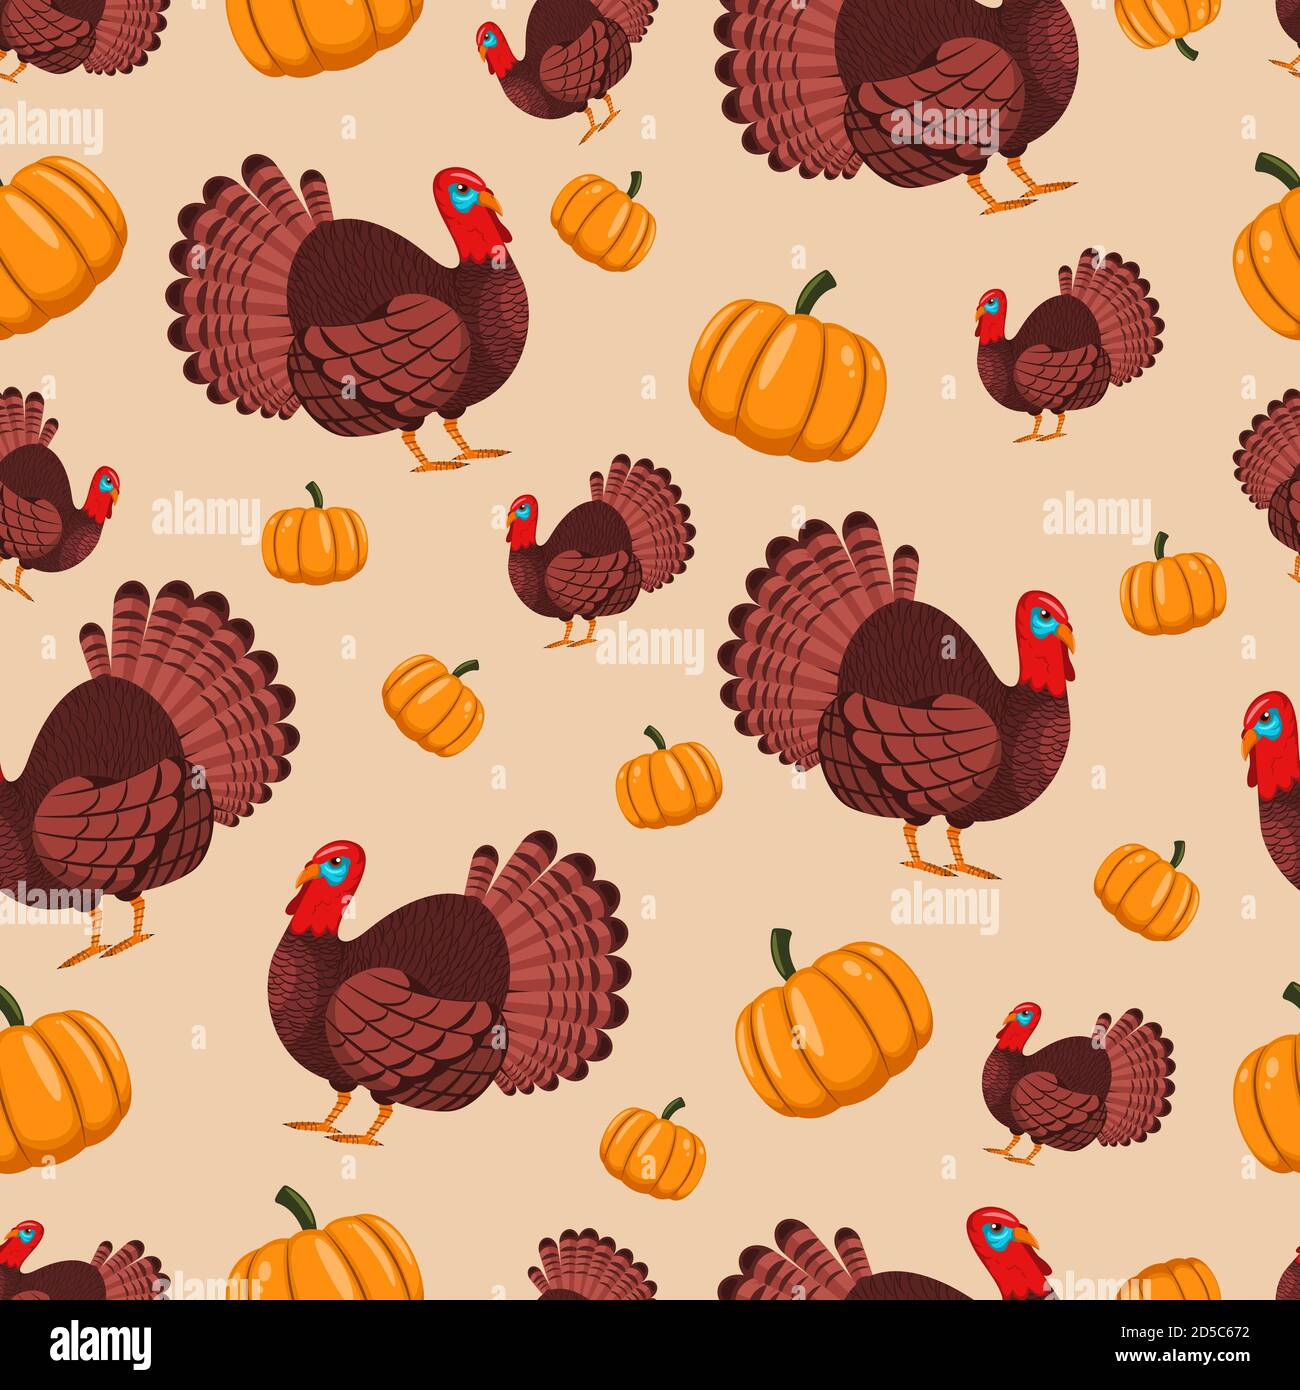 Turkey bird and pumpkin vector seamless pattern for holiday Thanksgiving. Cartoon background for wallpaper, wrapping, packing, and backdrop. Stock Vector